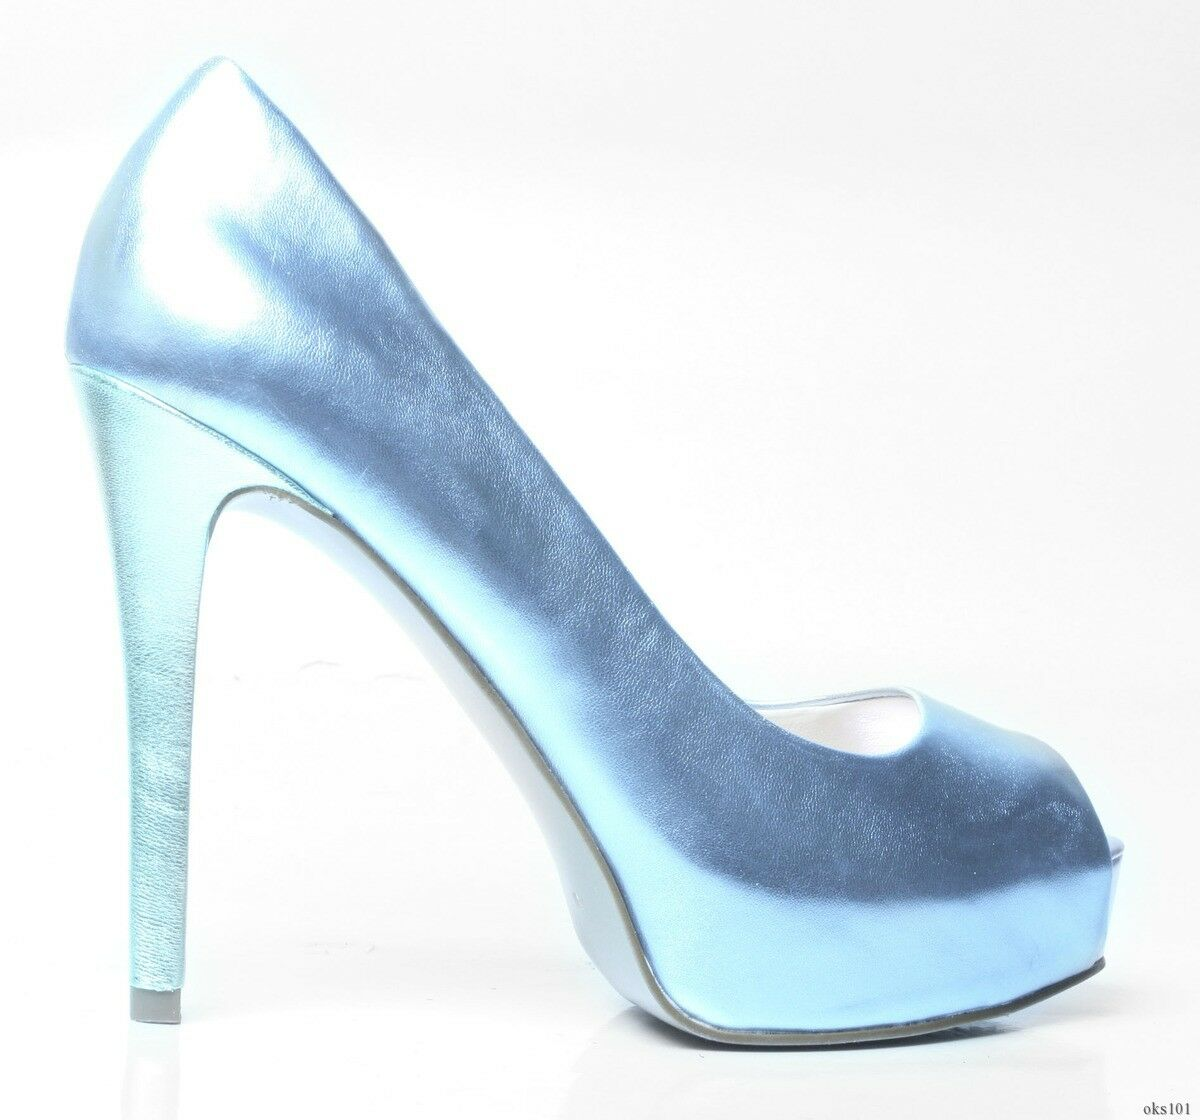 new GUESS 'Paches' open-toe metallic blue heels platforms shoes - SEXY